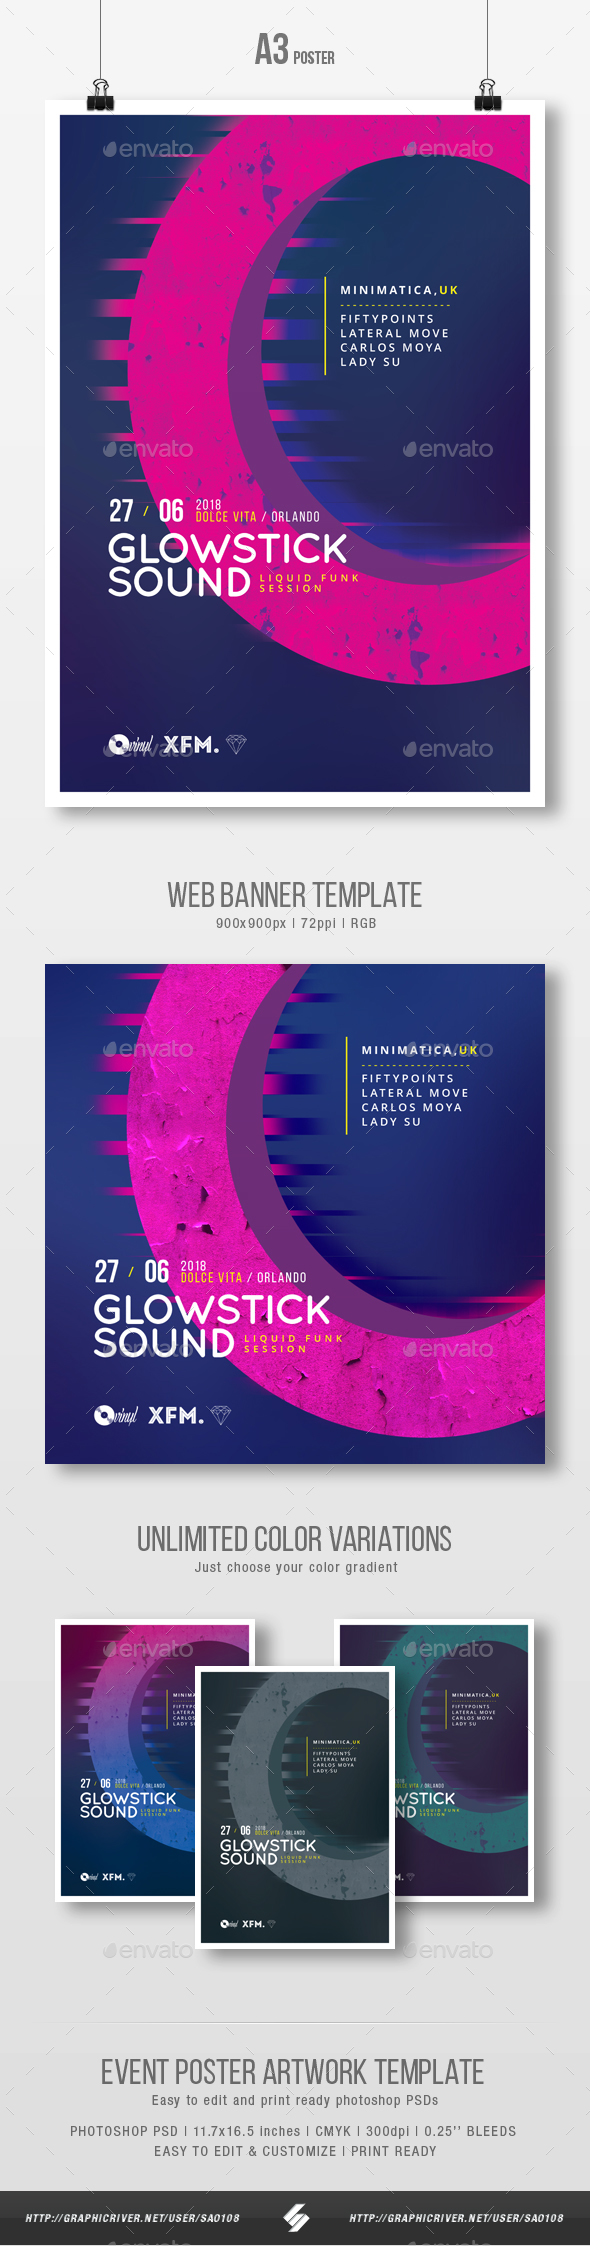 Glowstick Sound - Minimal Party Flyer / Poster Template A3 - Clubs & Parties Events